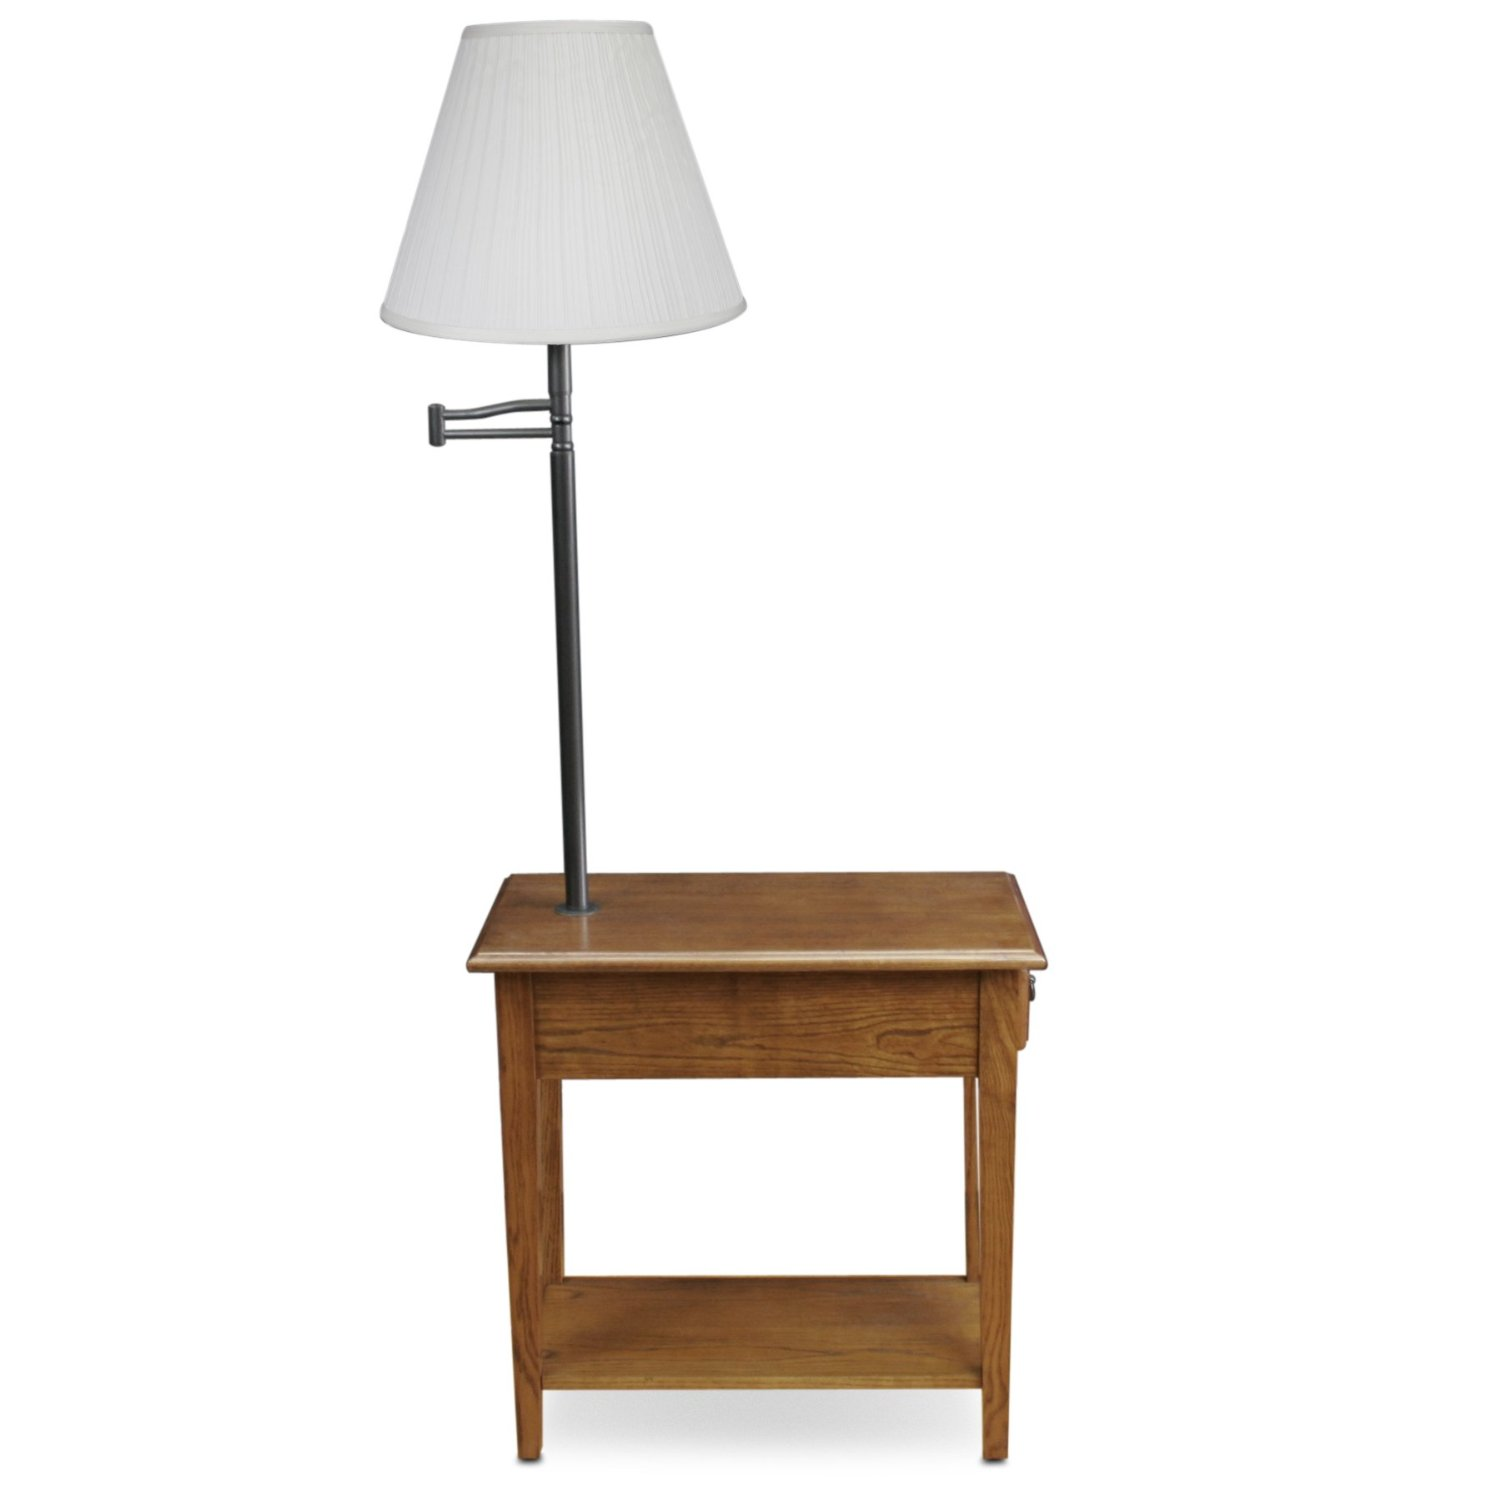 End table with attached lamp – 10 reasons to buy - End Table With Attached Lamp - 10 Reasons To Buy Warisan Lighting